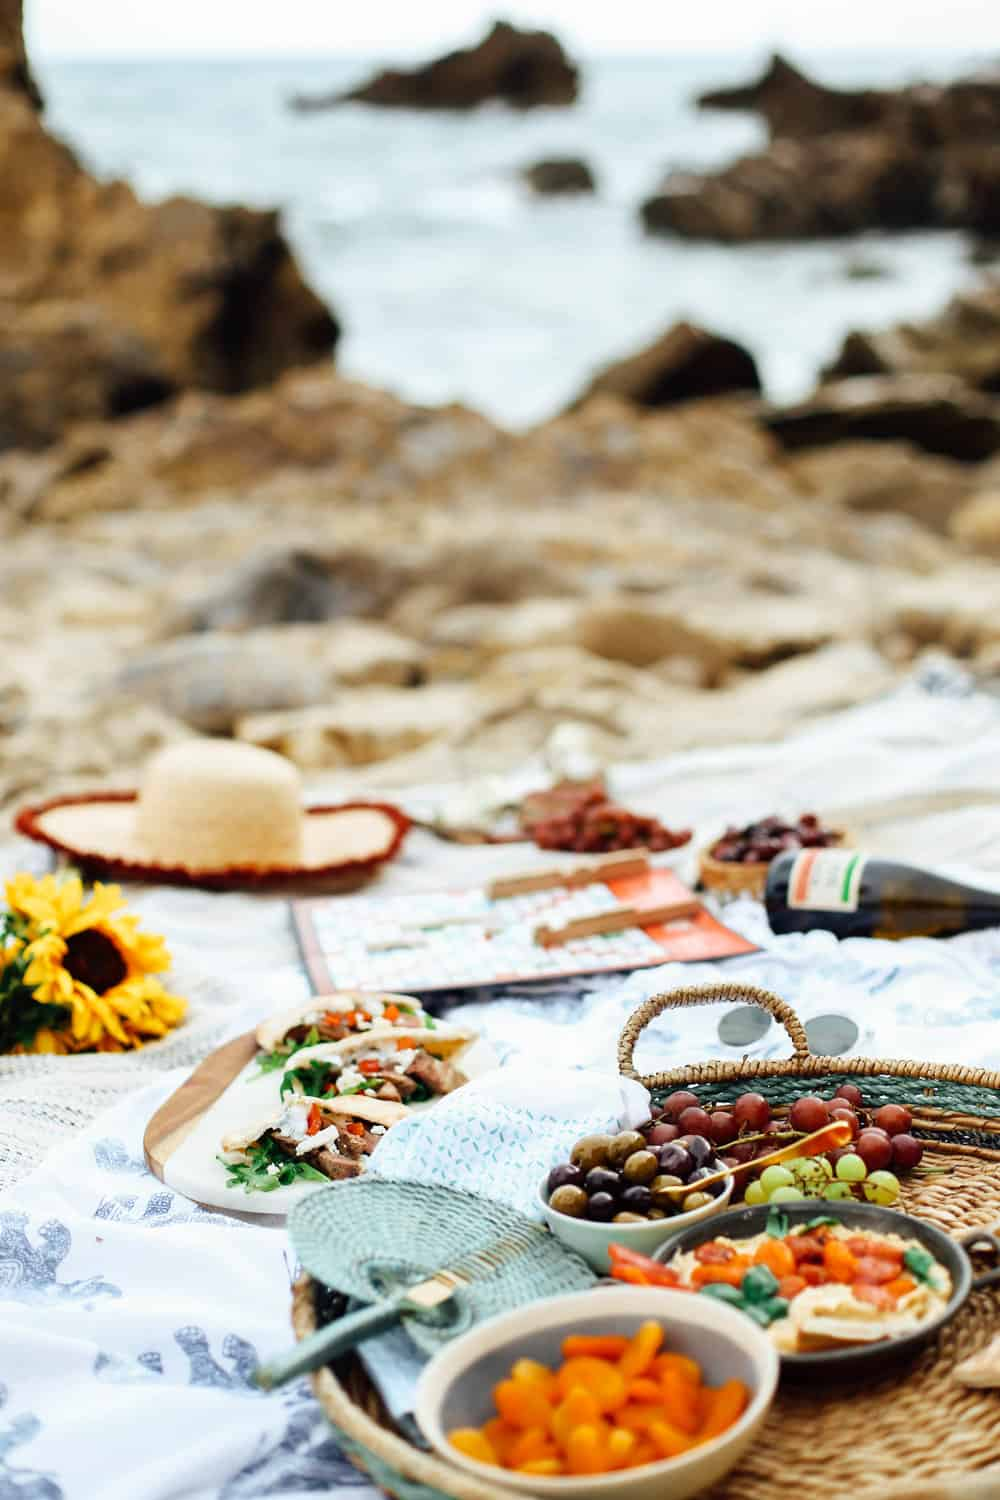 Mediterranean beach picnic spread with lamb pita pockets grapes olives hummus wine and Scrabble game board on beach towels on the beach